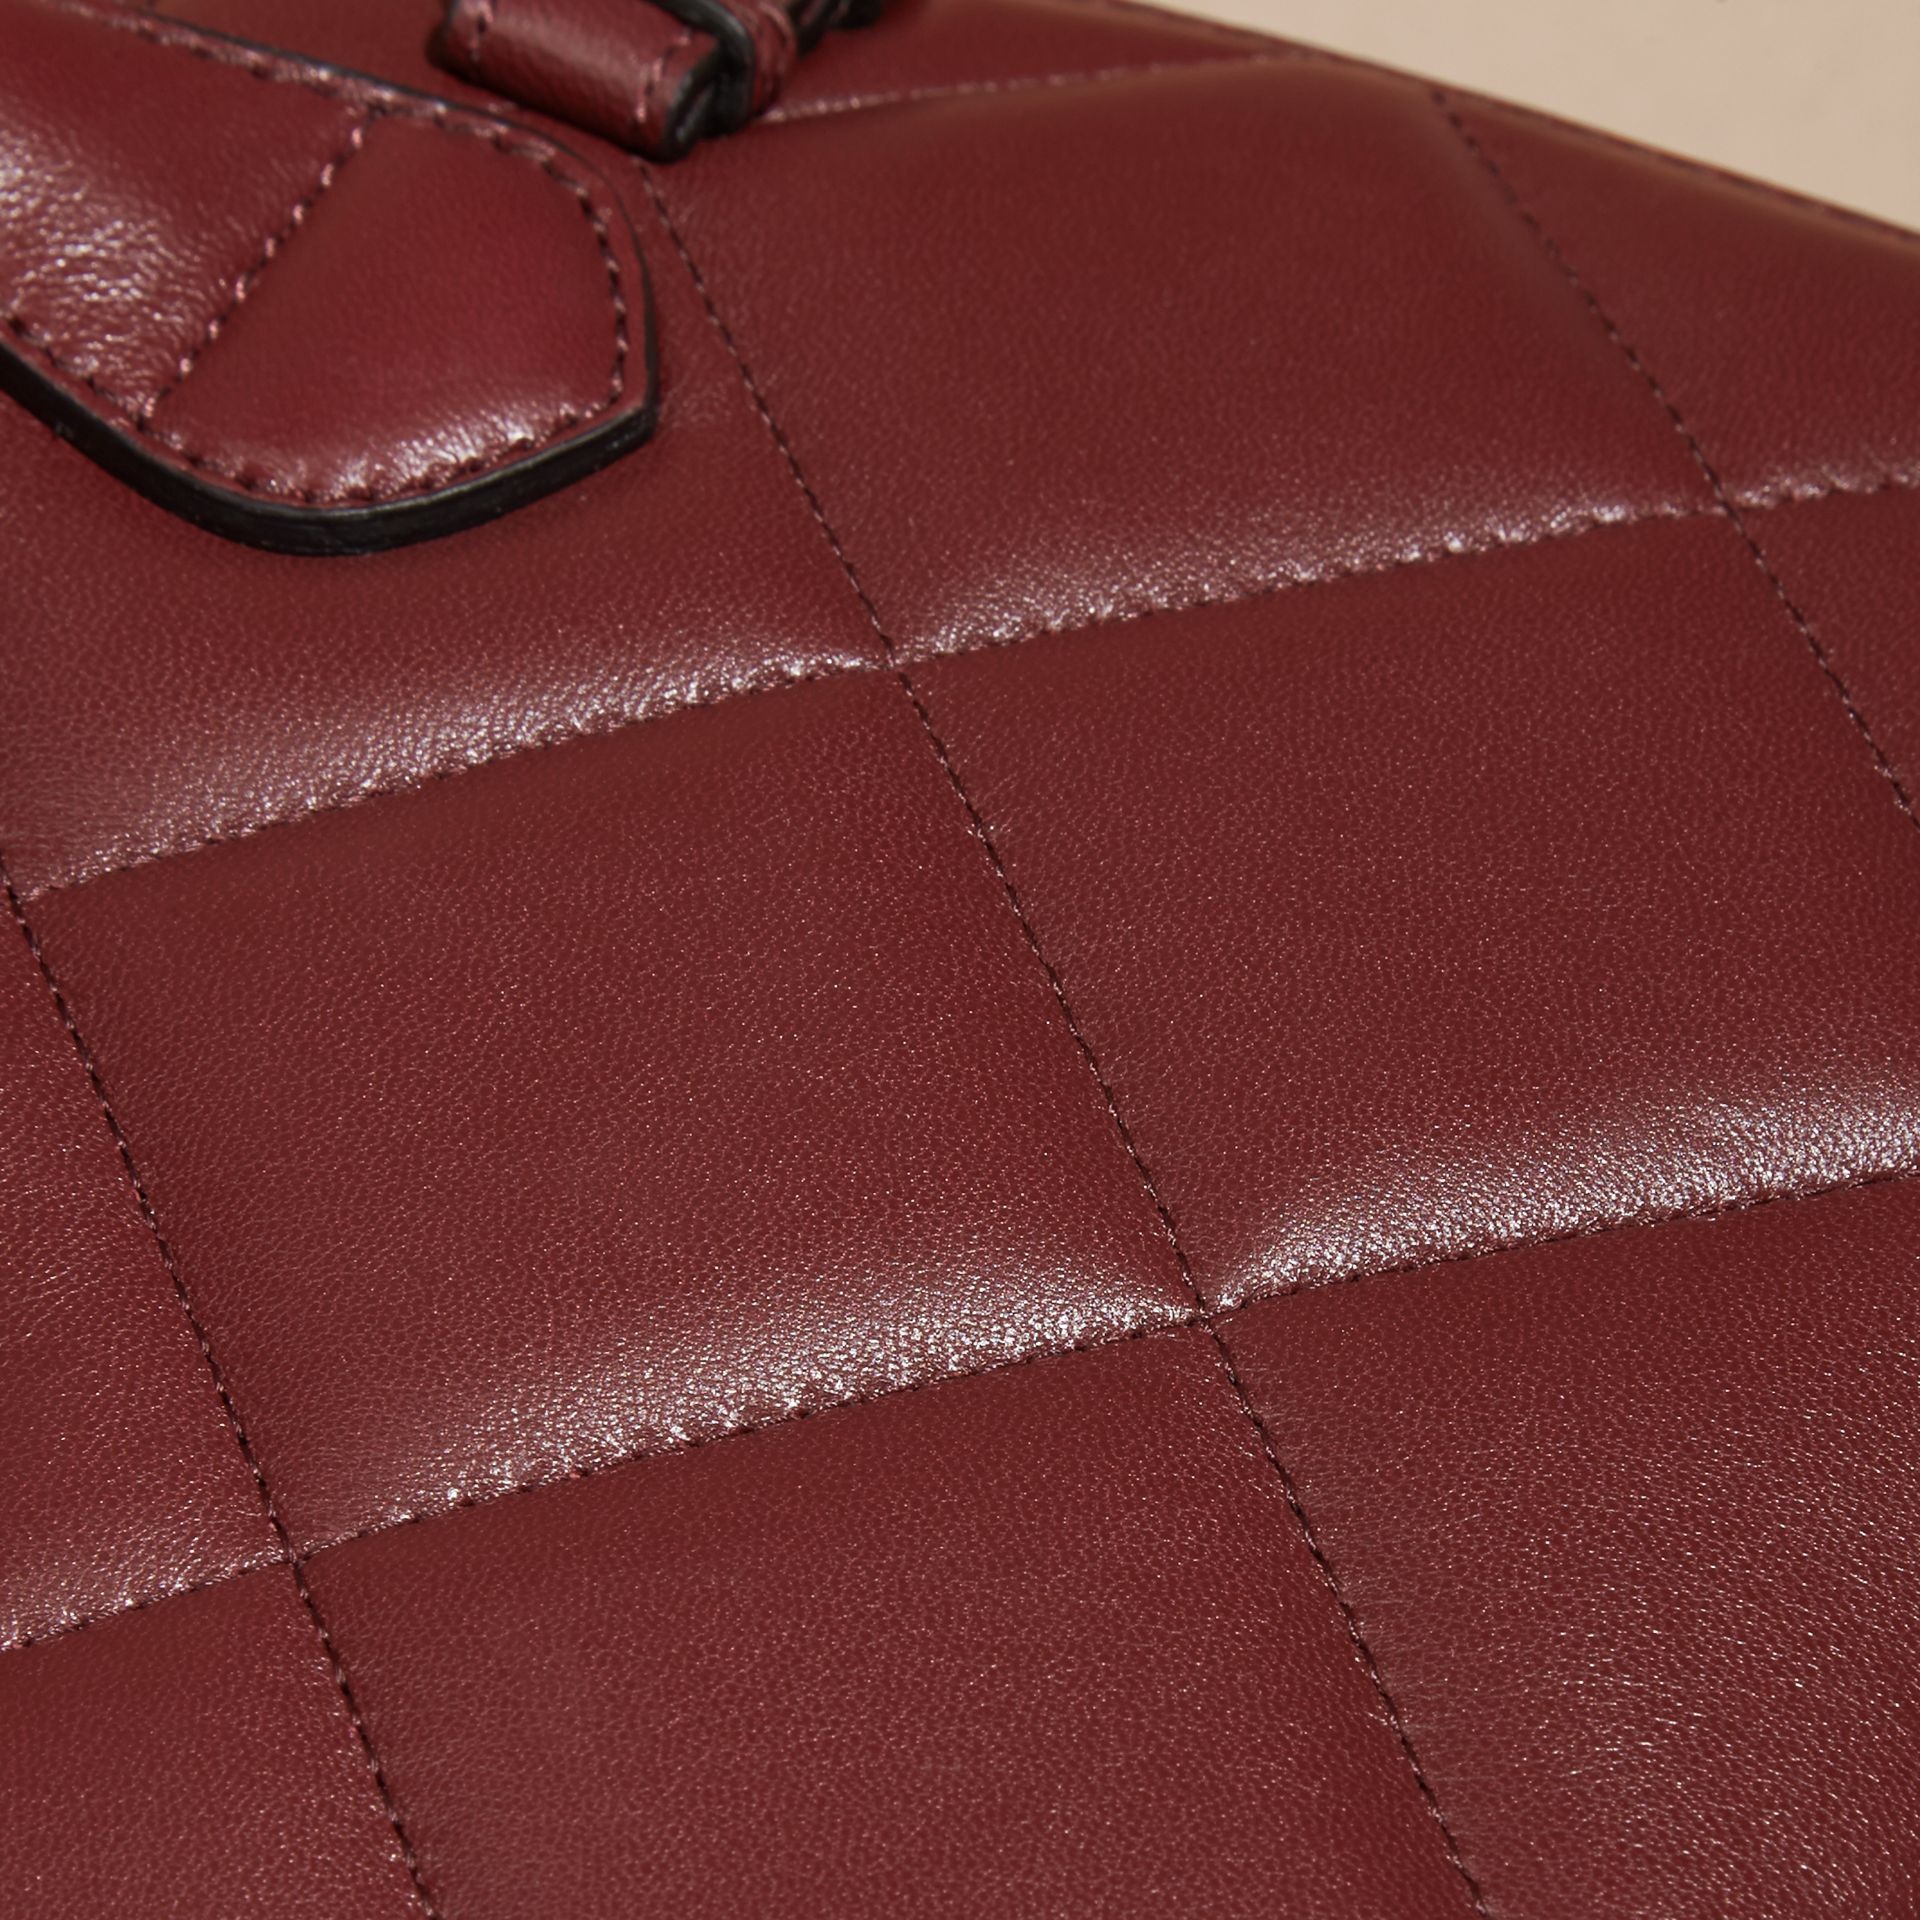 Dark damson The Baby Banner in Quilted Lambskin Dark Damson - gallery image 2